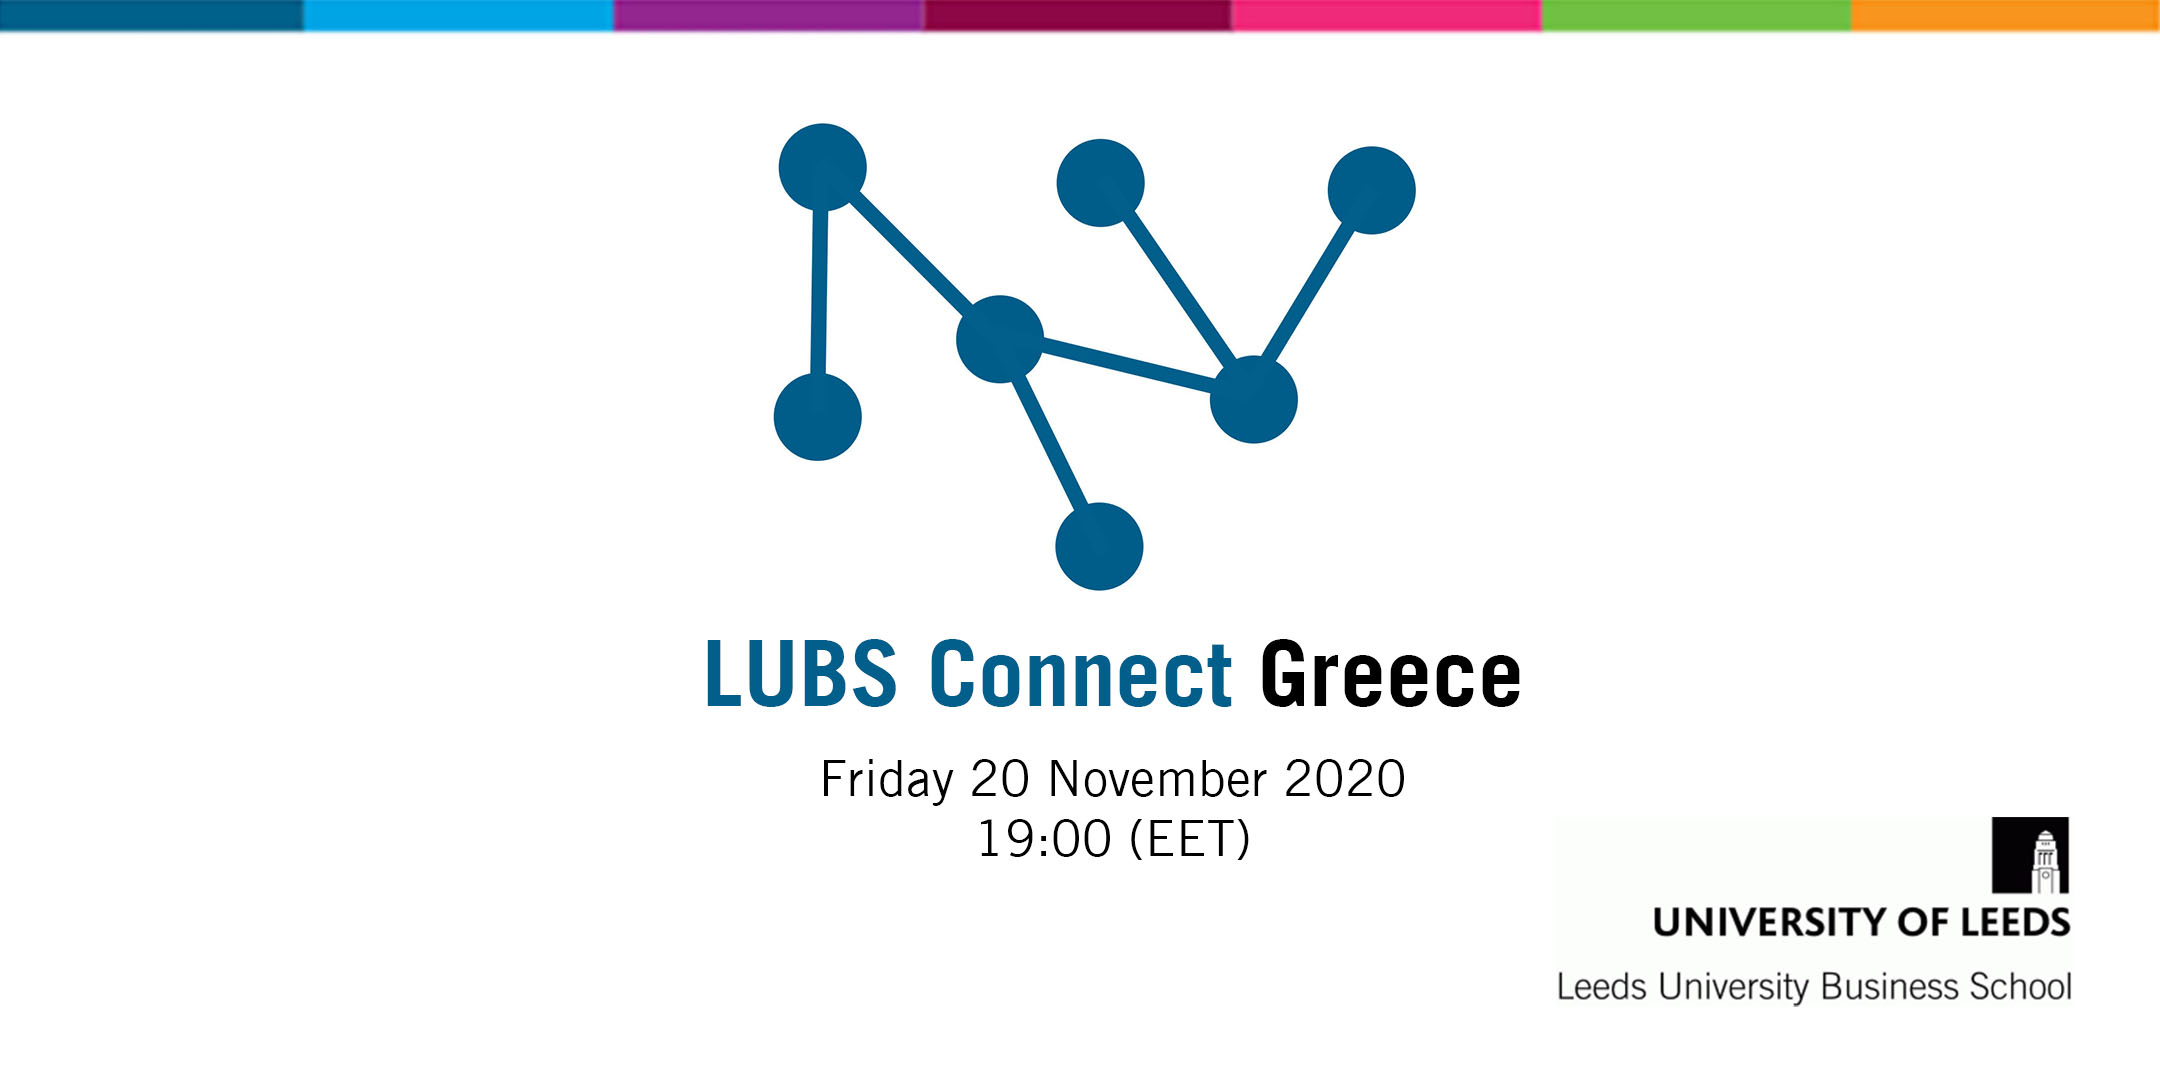 LUBS Connect Greece